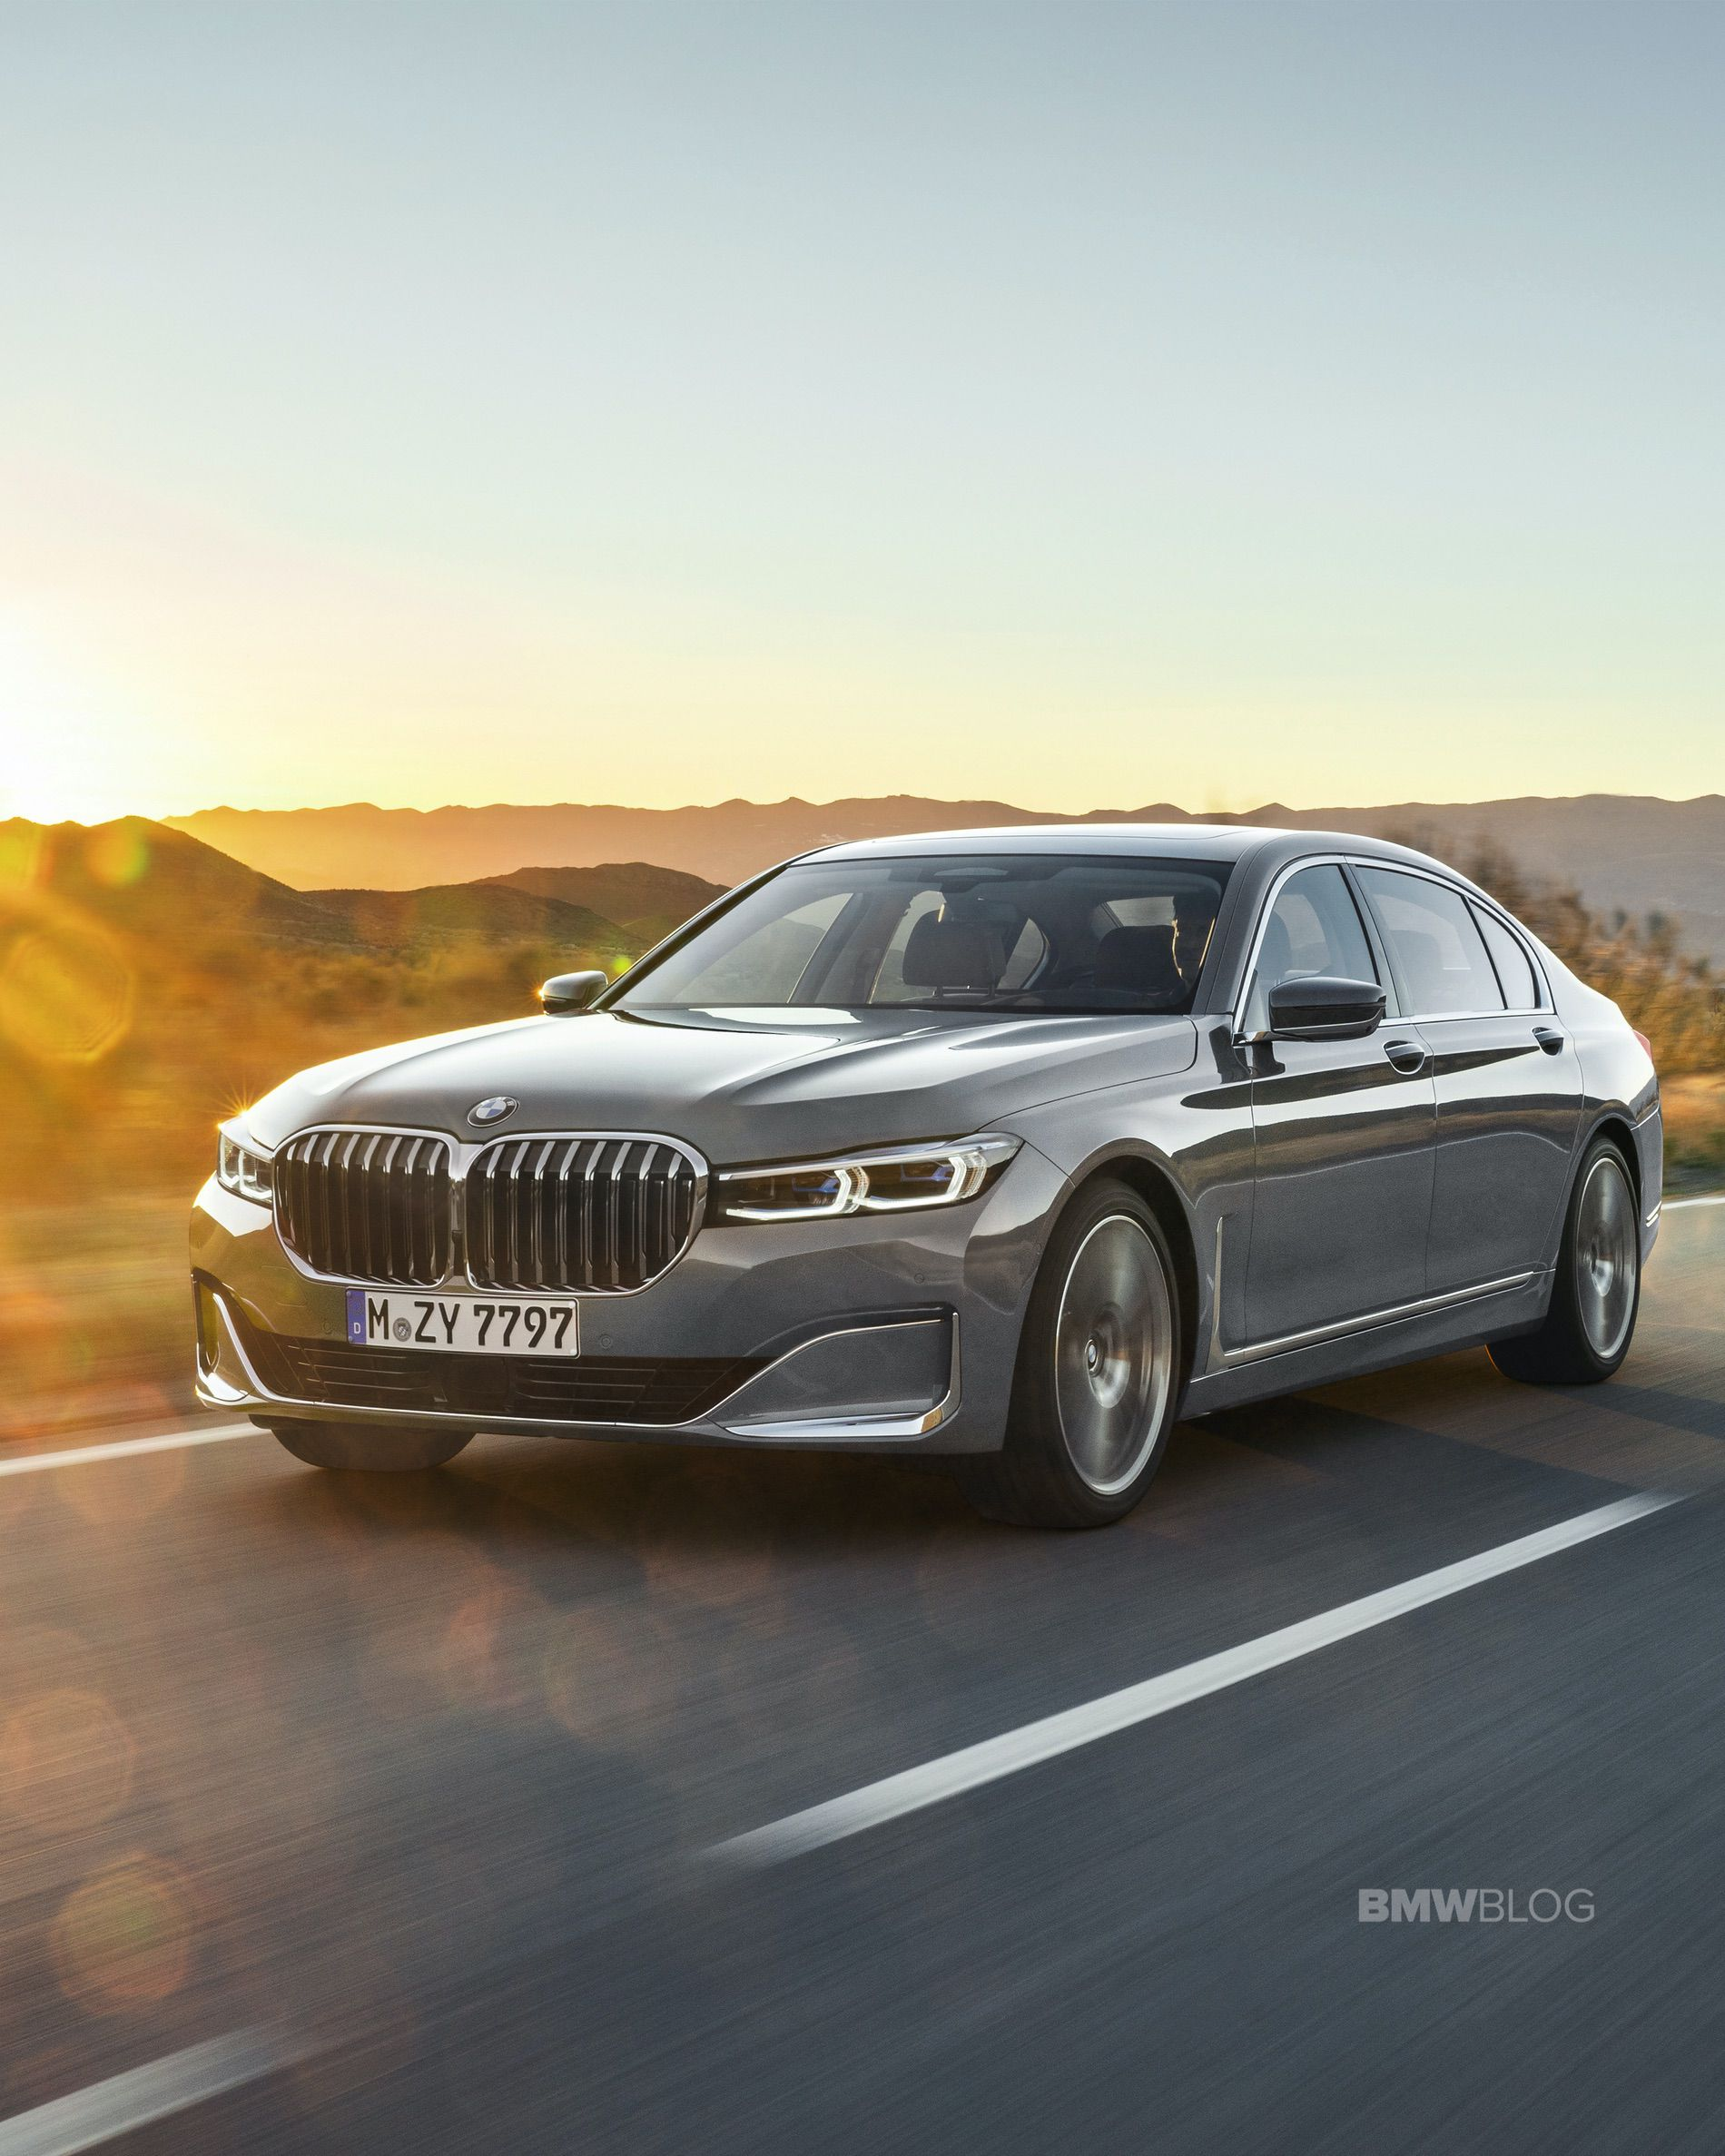 VIDEO: Carwow reviews the new BMW 7 Series LCI